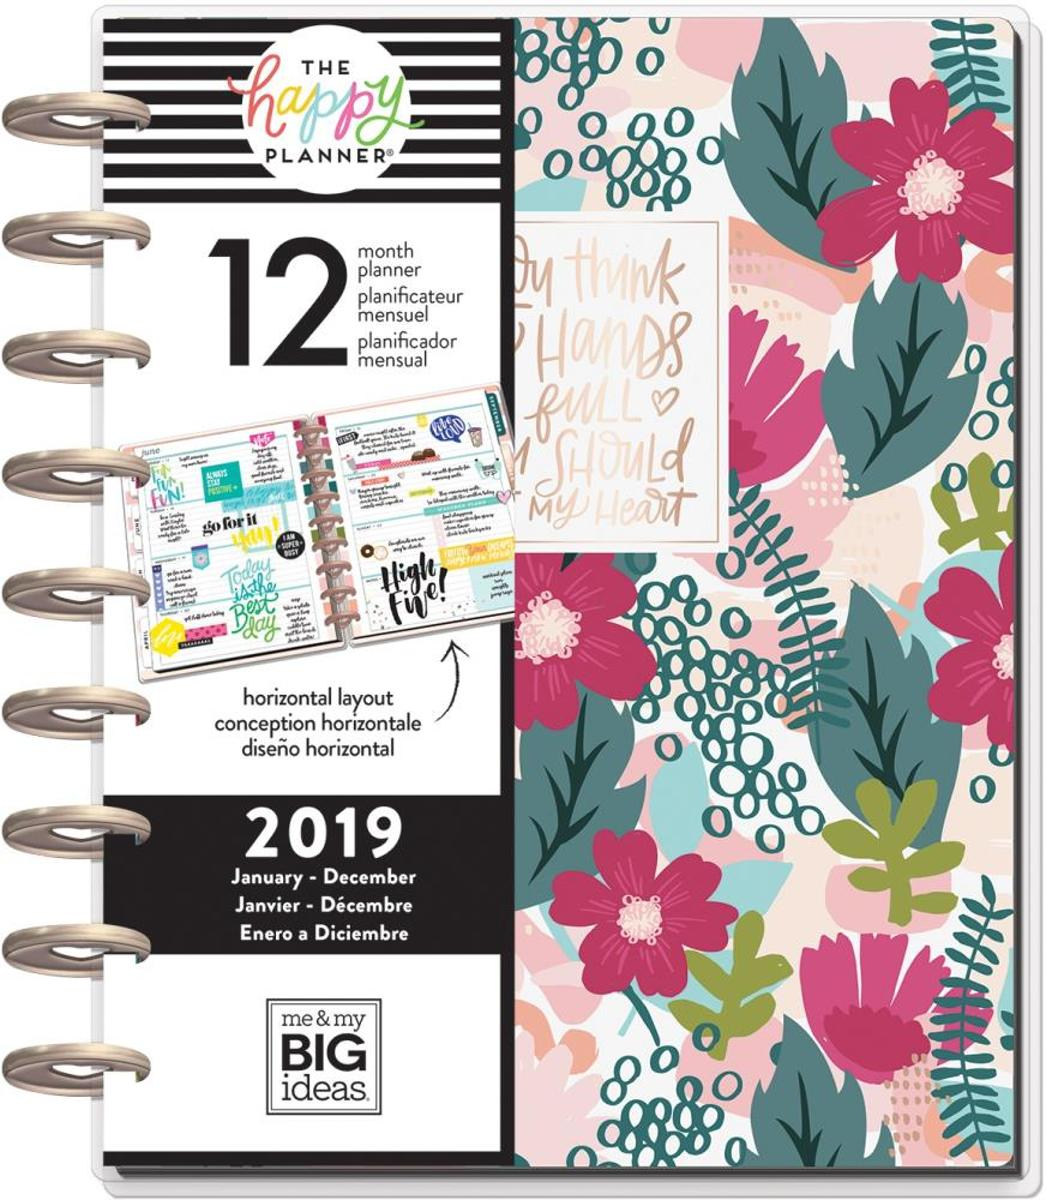 Me& my big ideas - Happy Planner - Wanderlust - Jan-Dec 2019